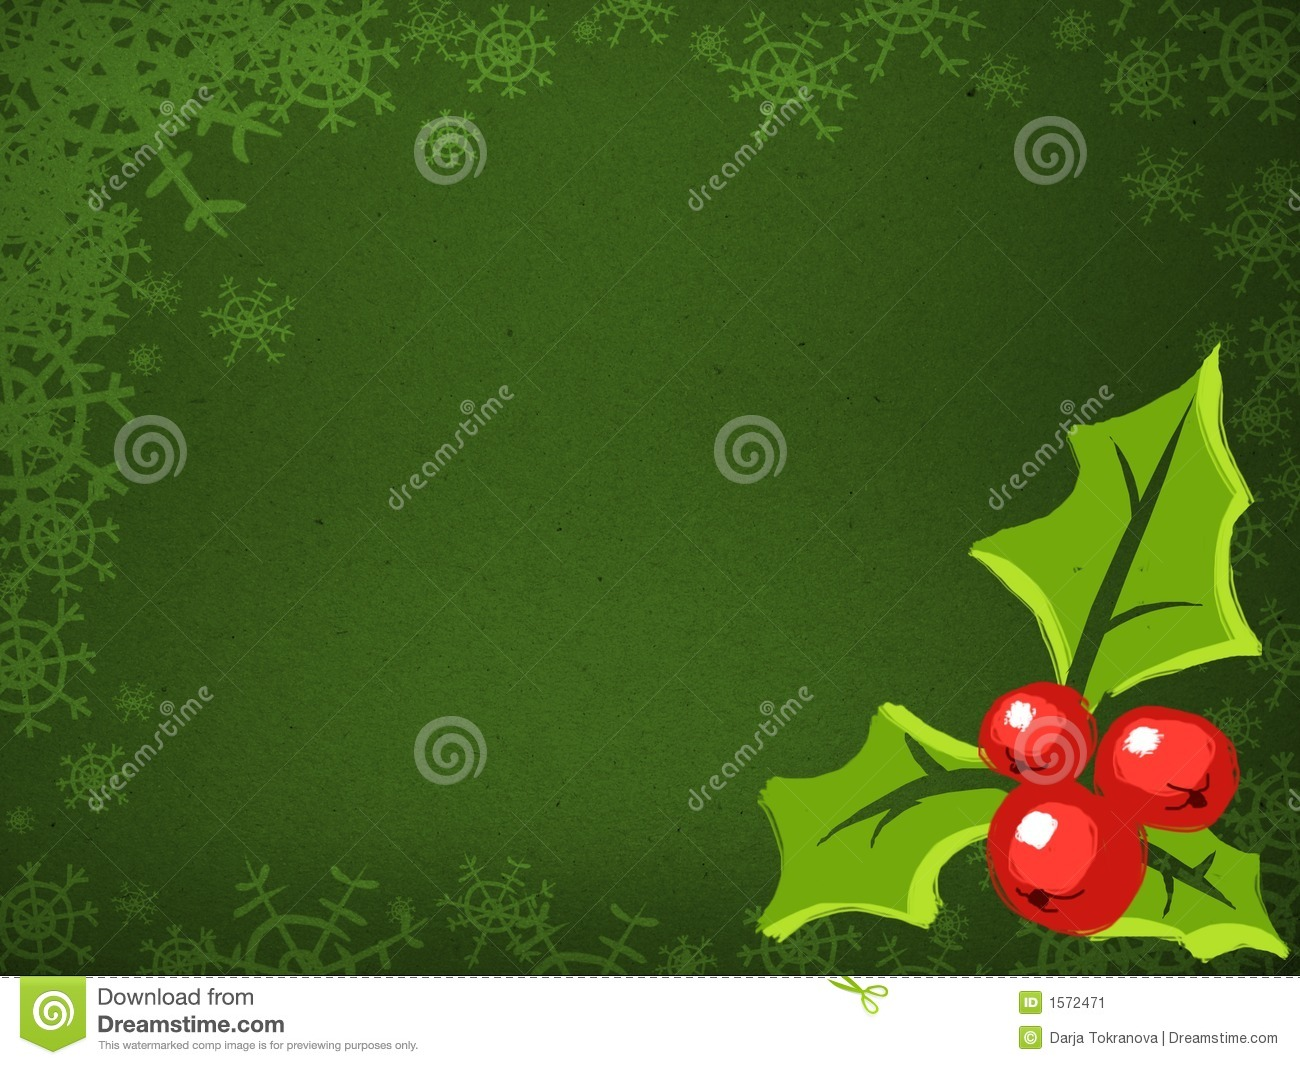 Green snowflake icon stock illustration Illustration of